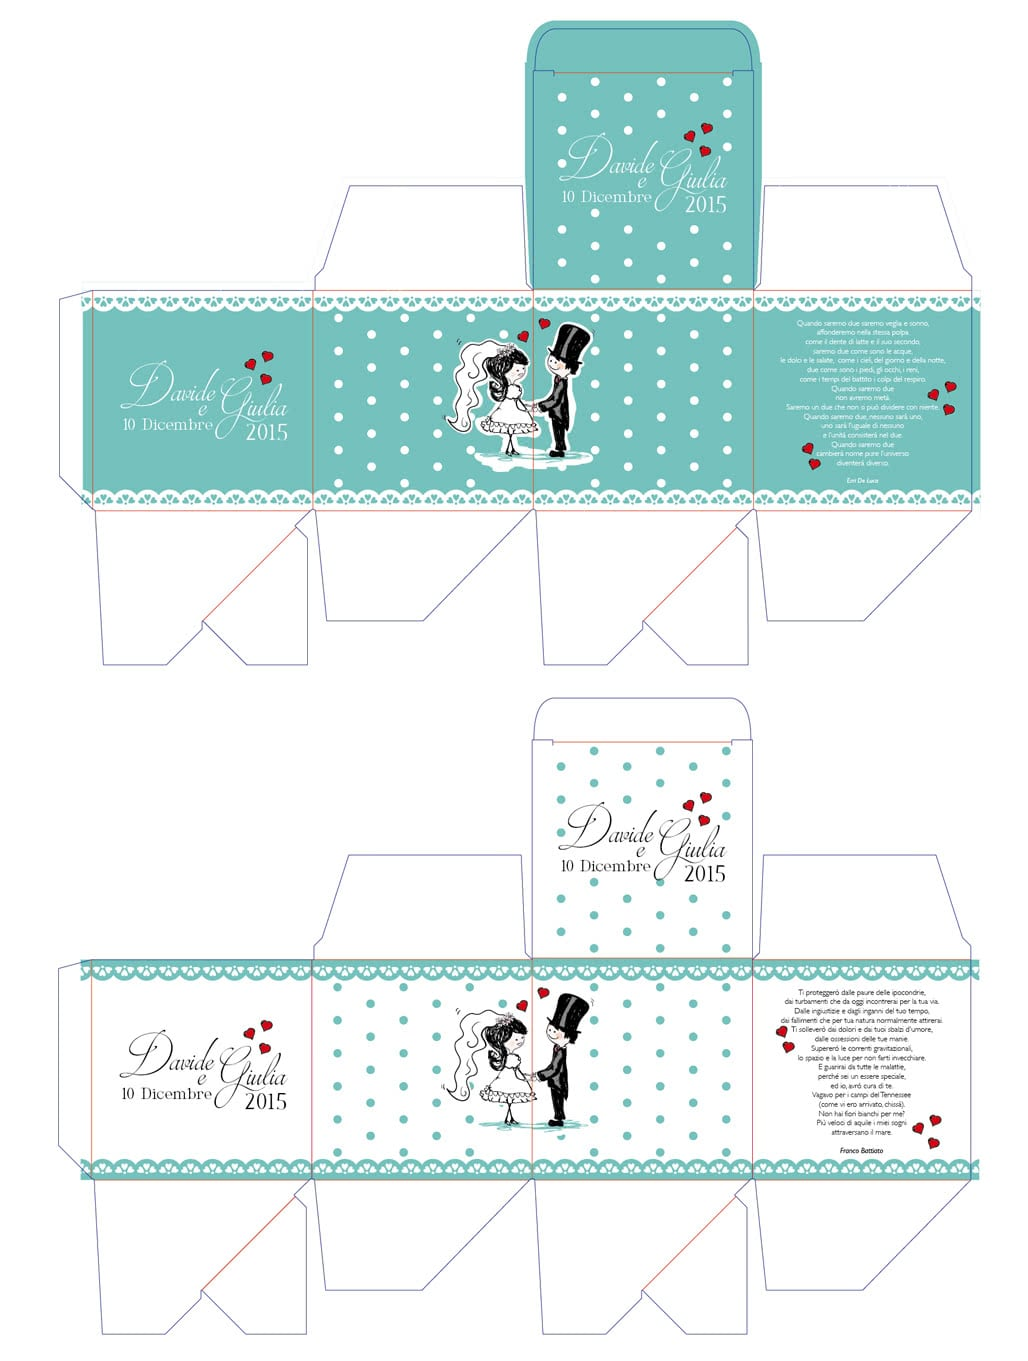 Packaging die cut template images template design ideas for Knockout template foreach